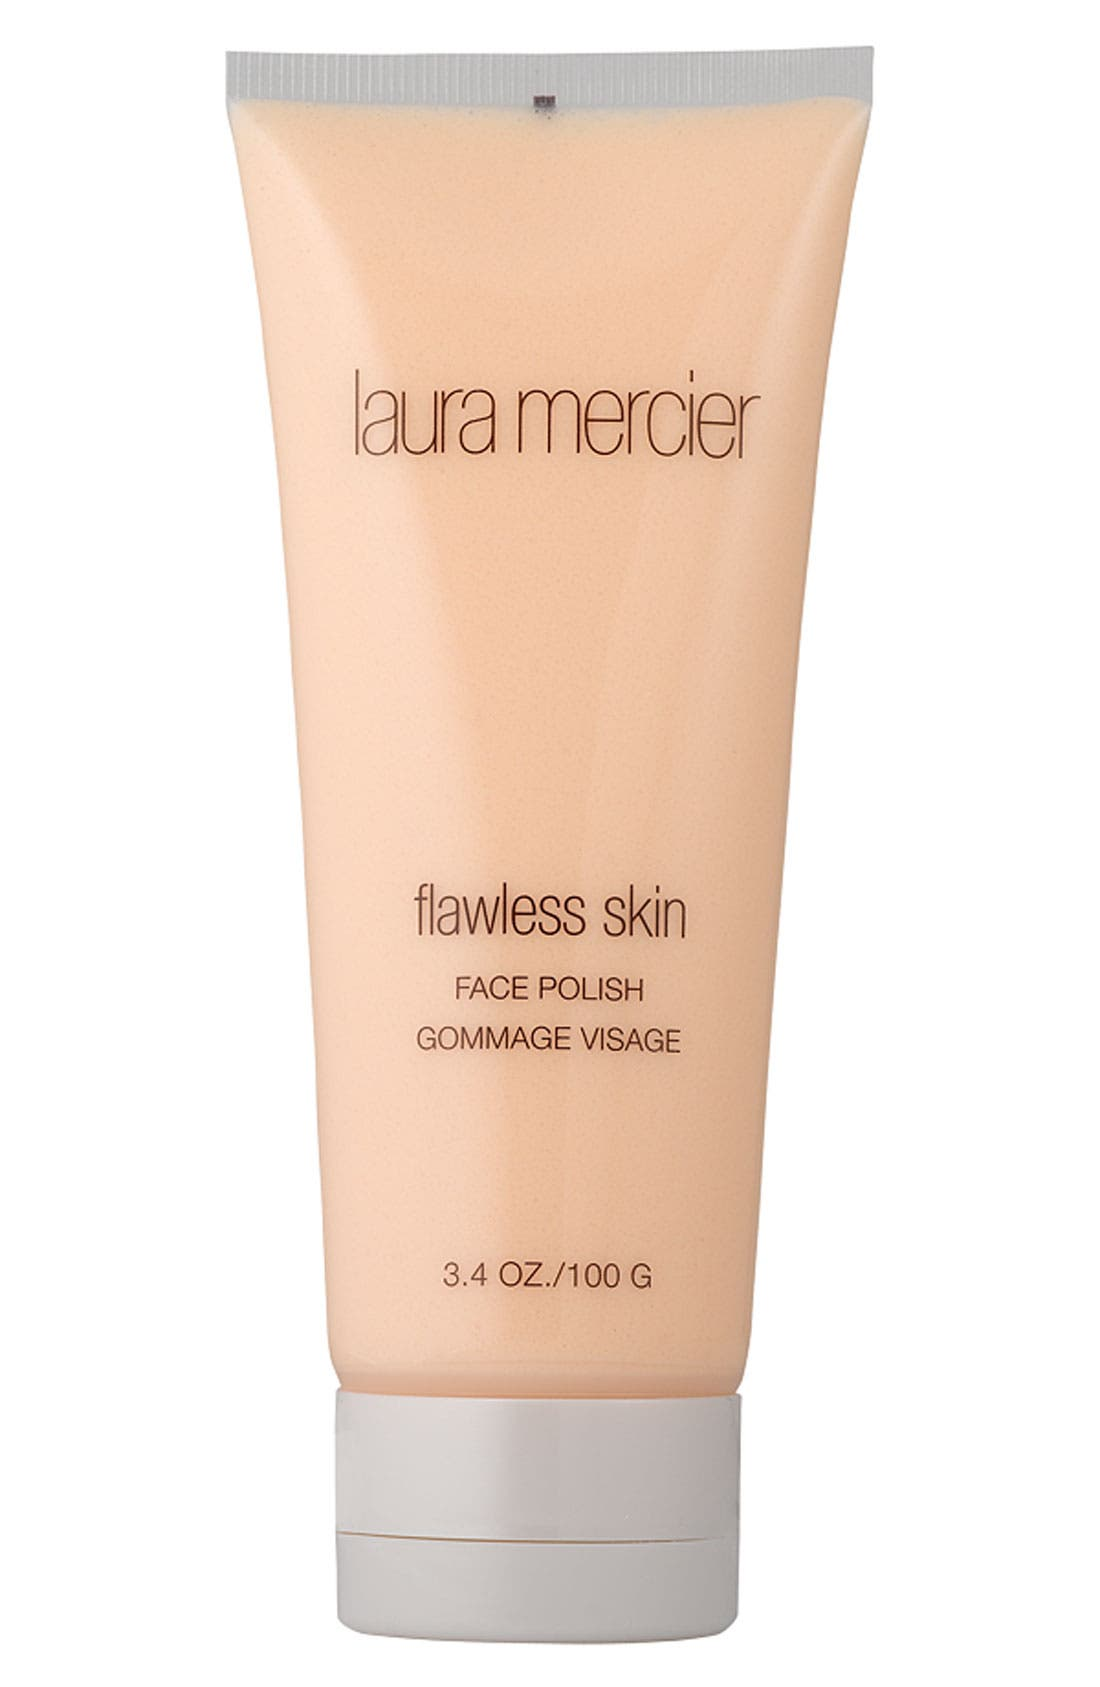 'Flawless Skin' Face Polish,                             Main thumbnail 1, color,                             NO COLOR